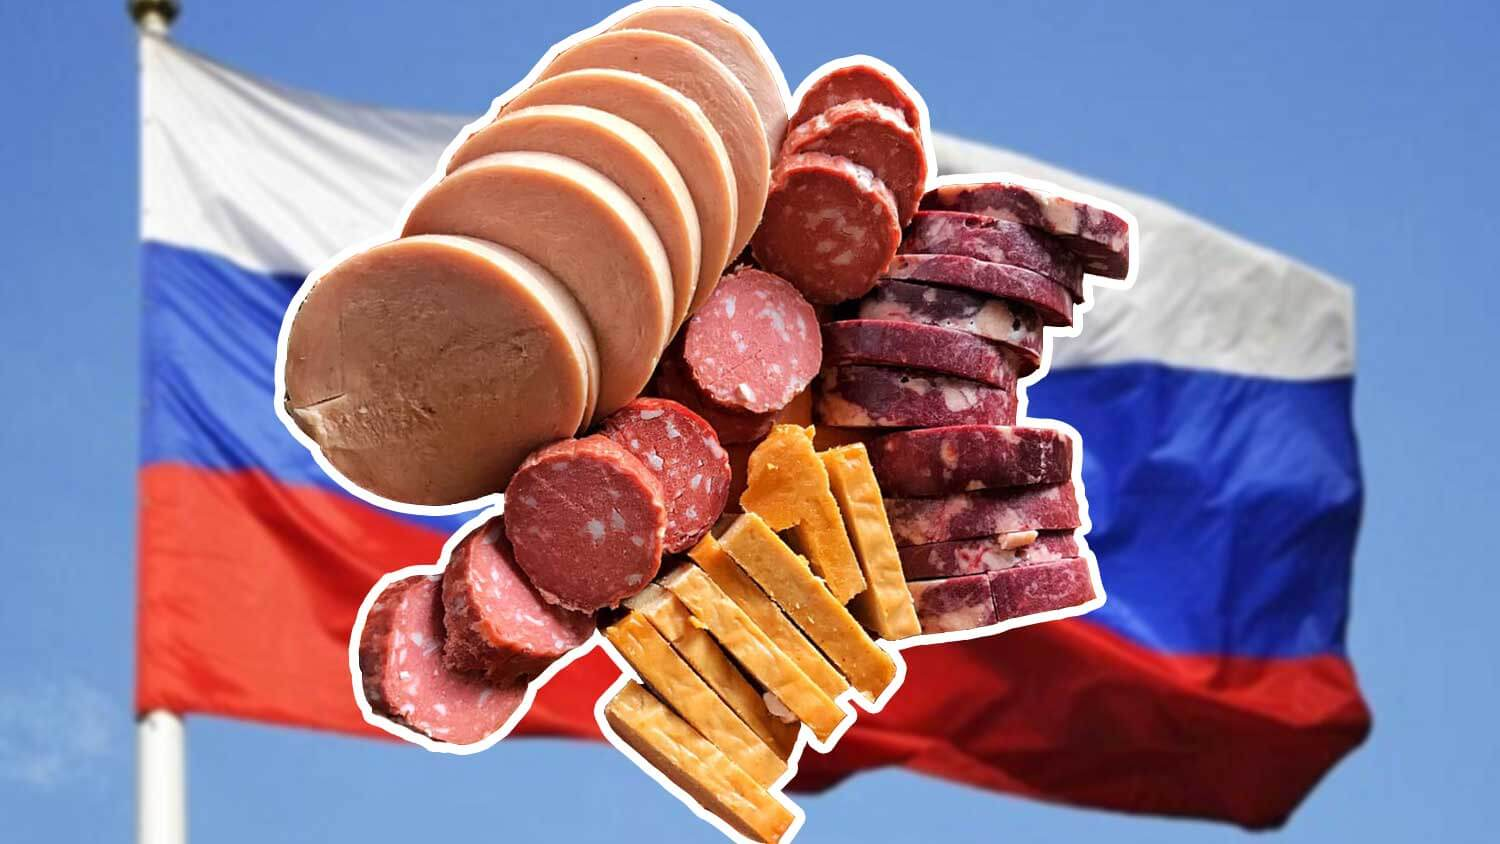 Russia Might Just Have the Best Vegan Sausages In the World